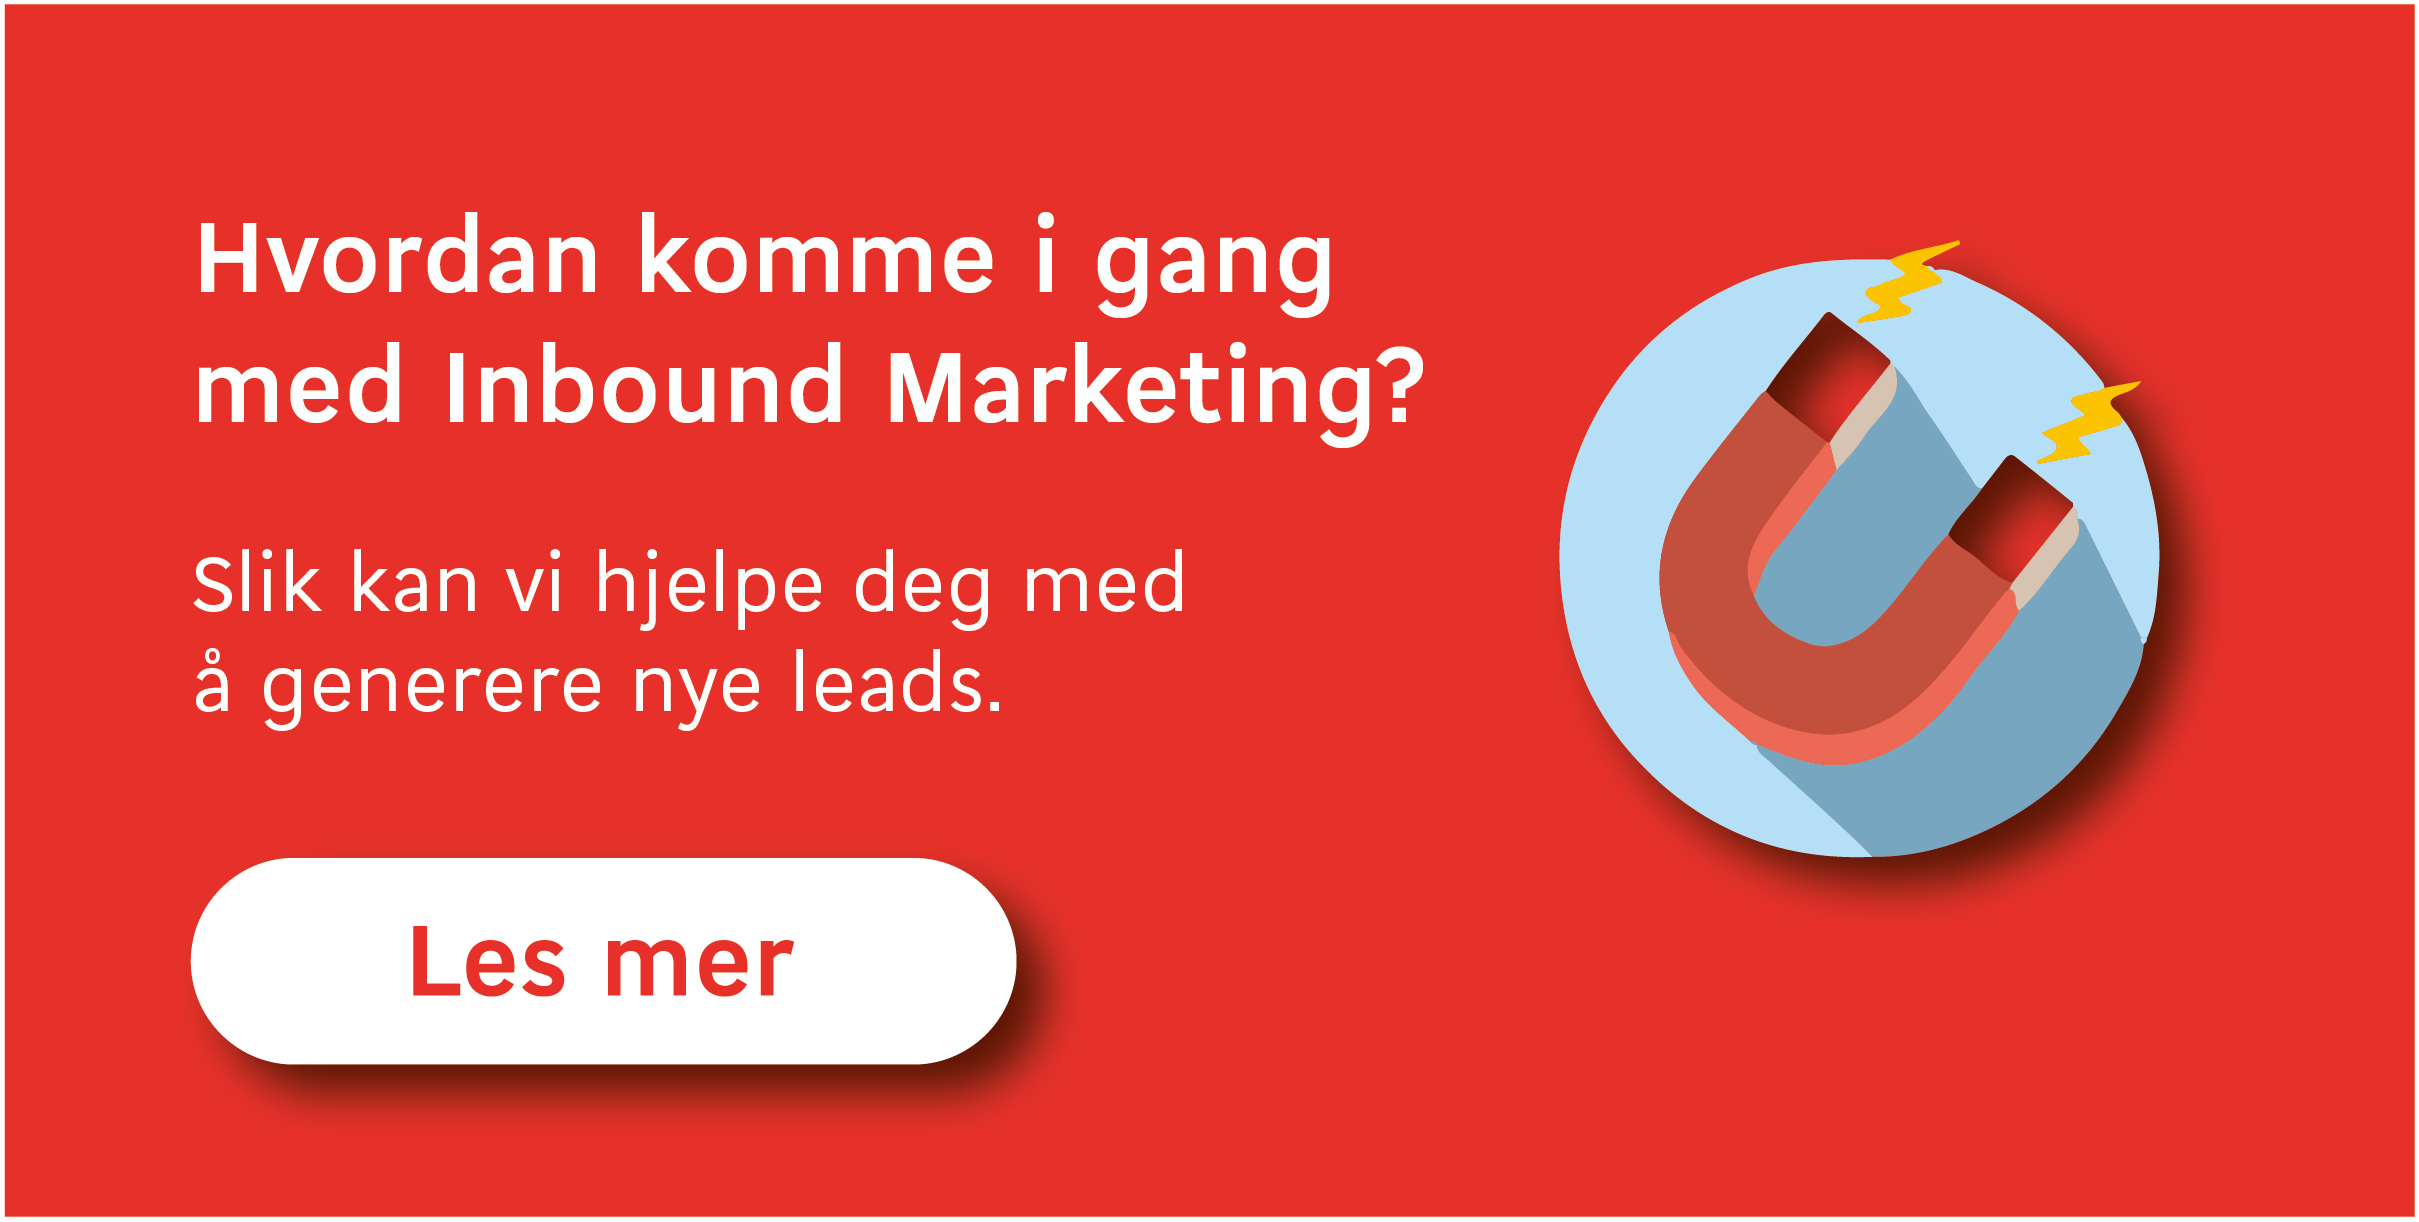 Hvorfor satse på Inbound Marketing?